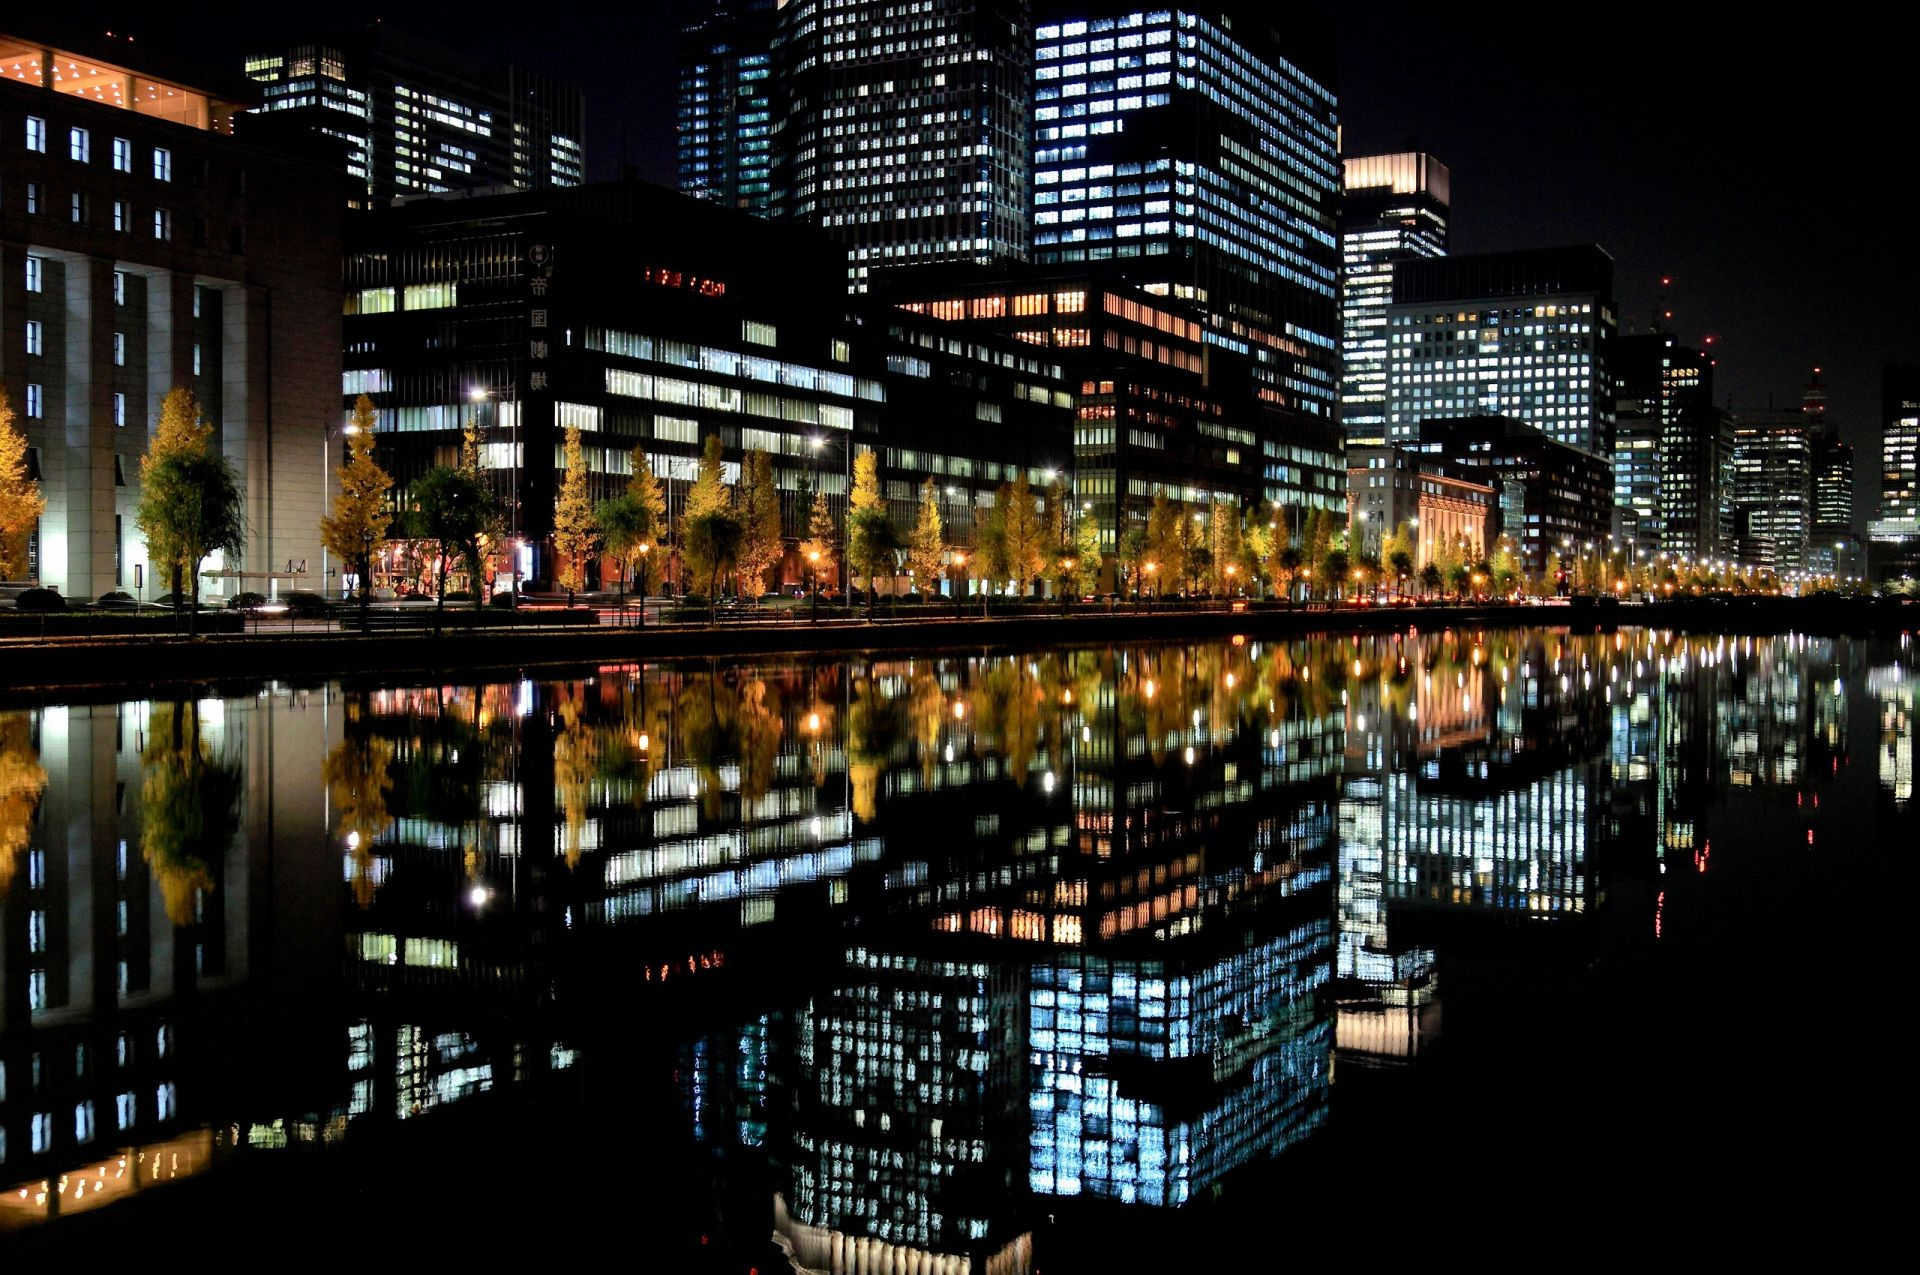 the reflection of the lights of the night City Japan